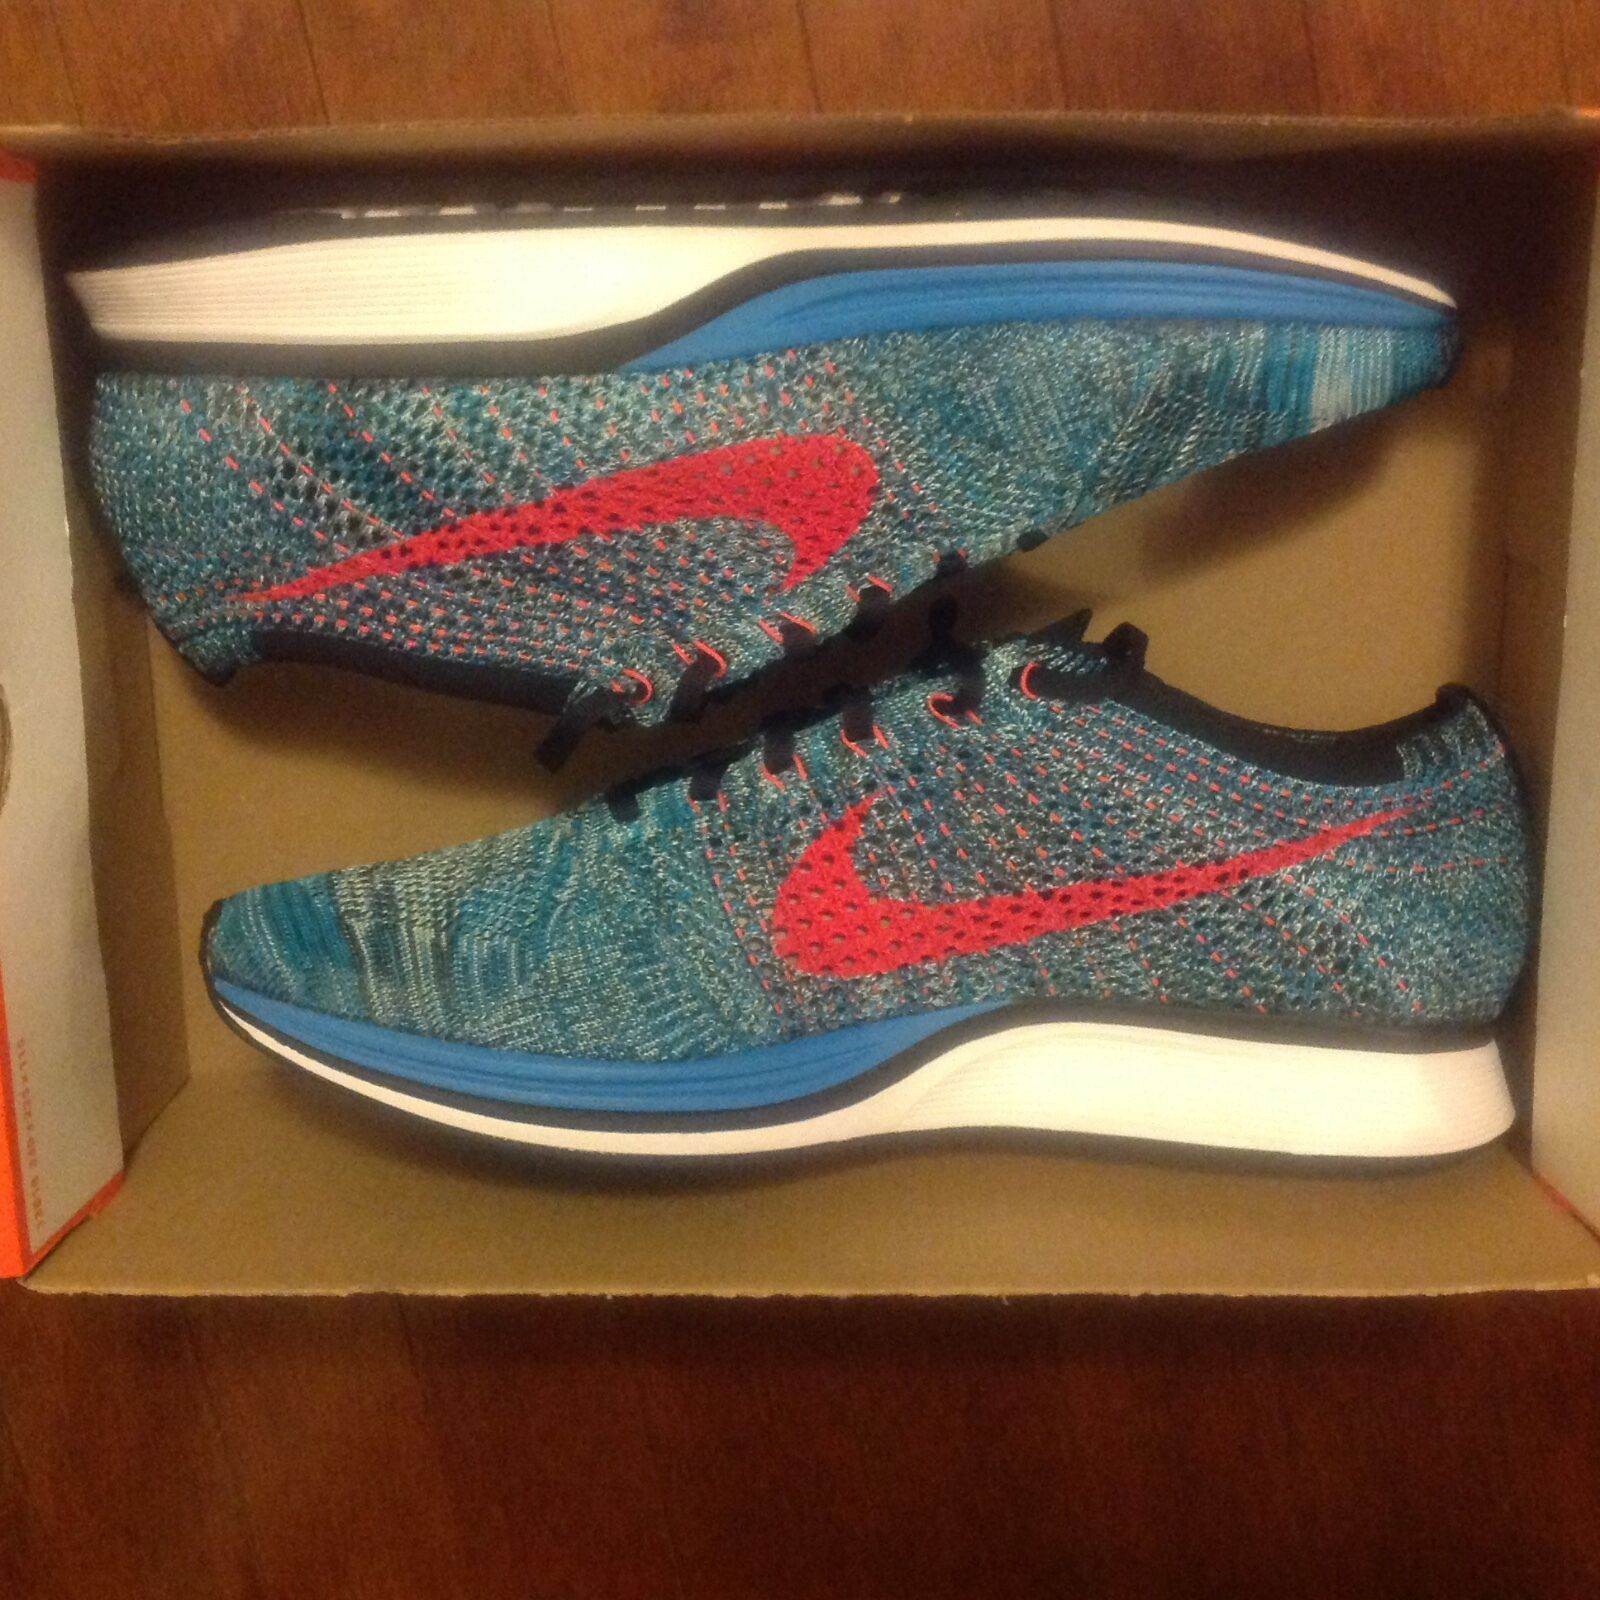 Nike Flyknit Racer Neo Turquoise, Sz 13, New in Box, Price reduction Seasonal clearance sale